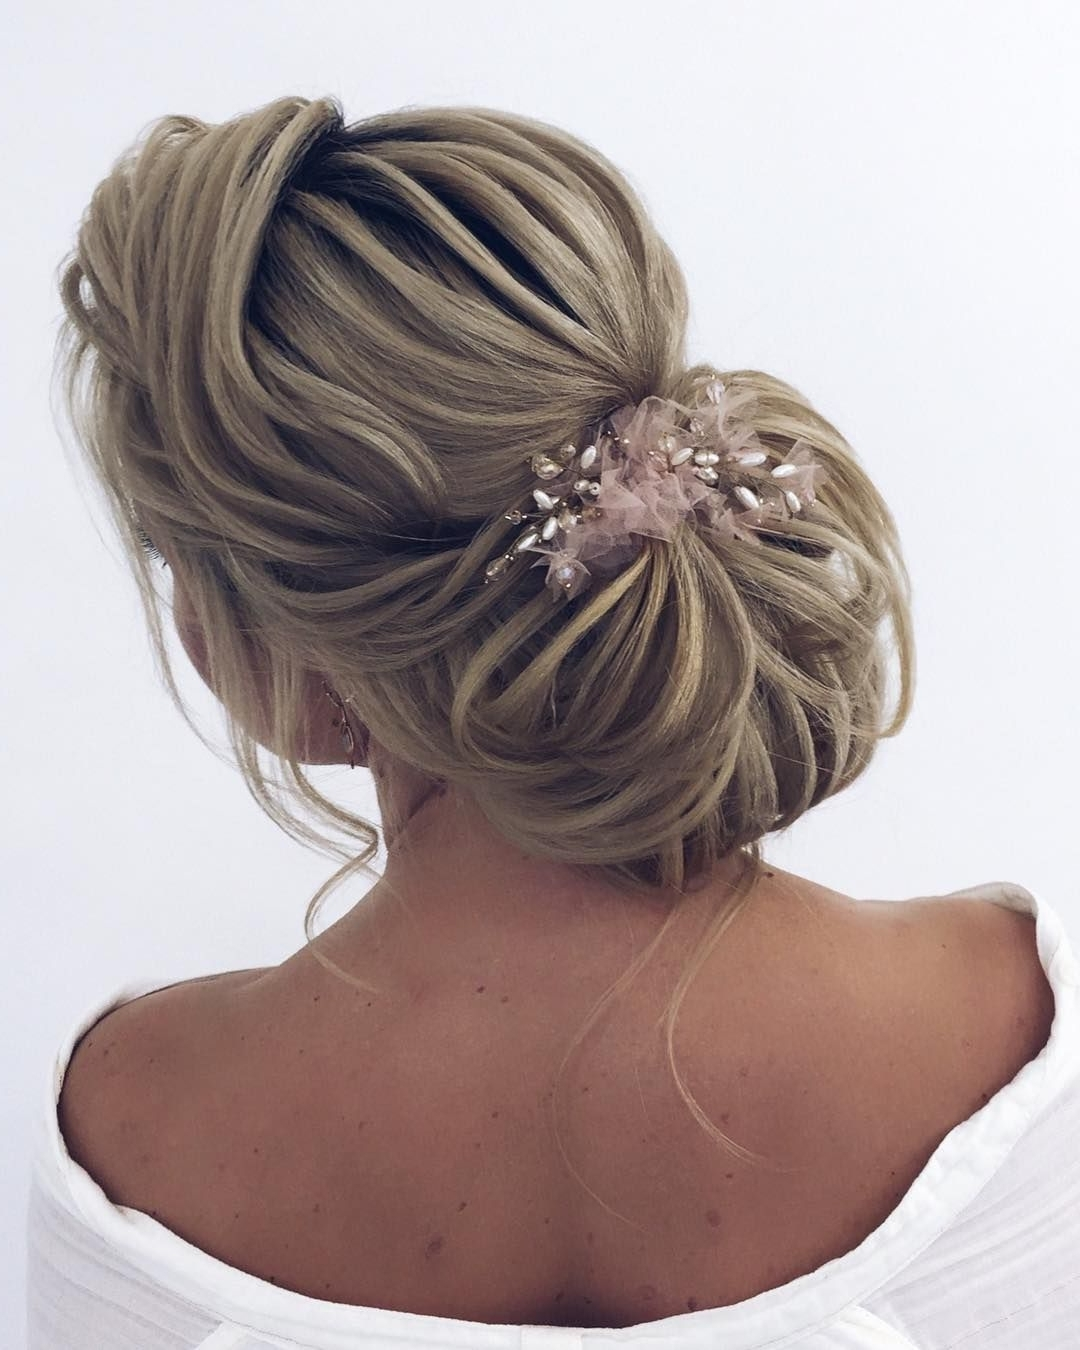 87 Fabulous Wedding Hairstyles For Every Wedding Dress Neckline Within Fashionable Fabulous Bridal Pony Hairstyles (View 11 of 20)